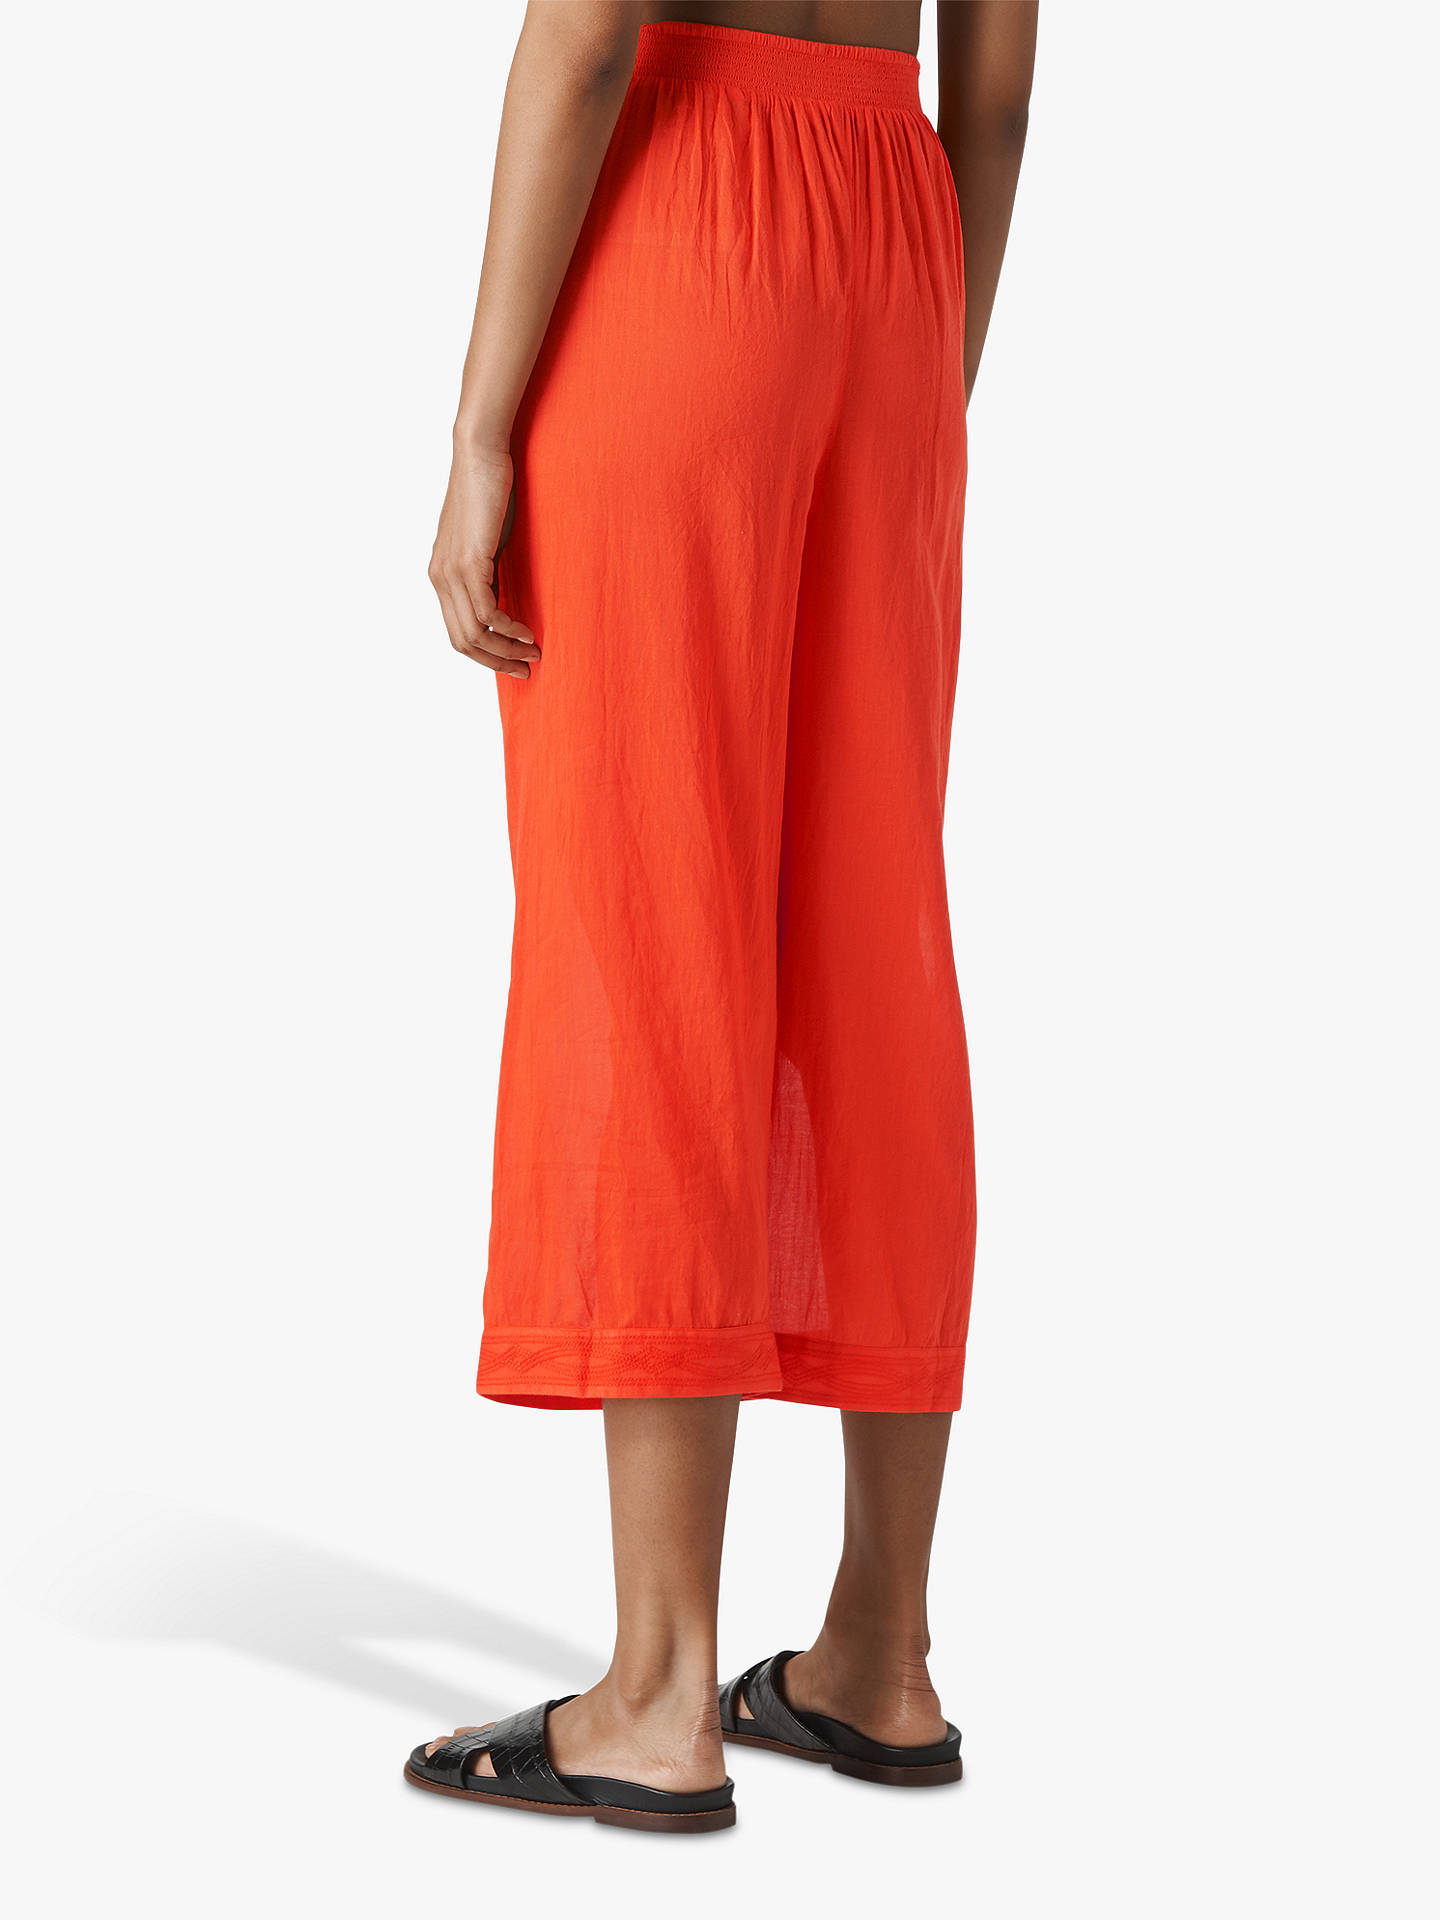 96f01f27d5 ... Buy Whistles Cotton Beach Voile Trousers, Red, XS Online at  johnlewis.com ...